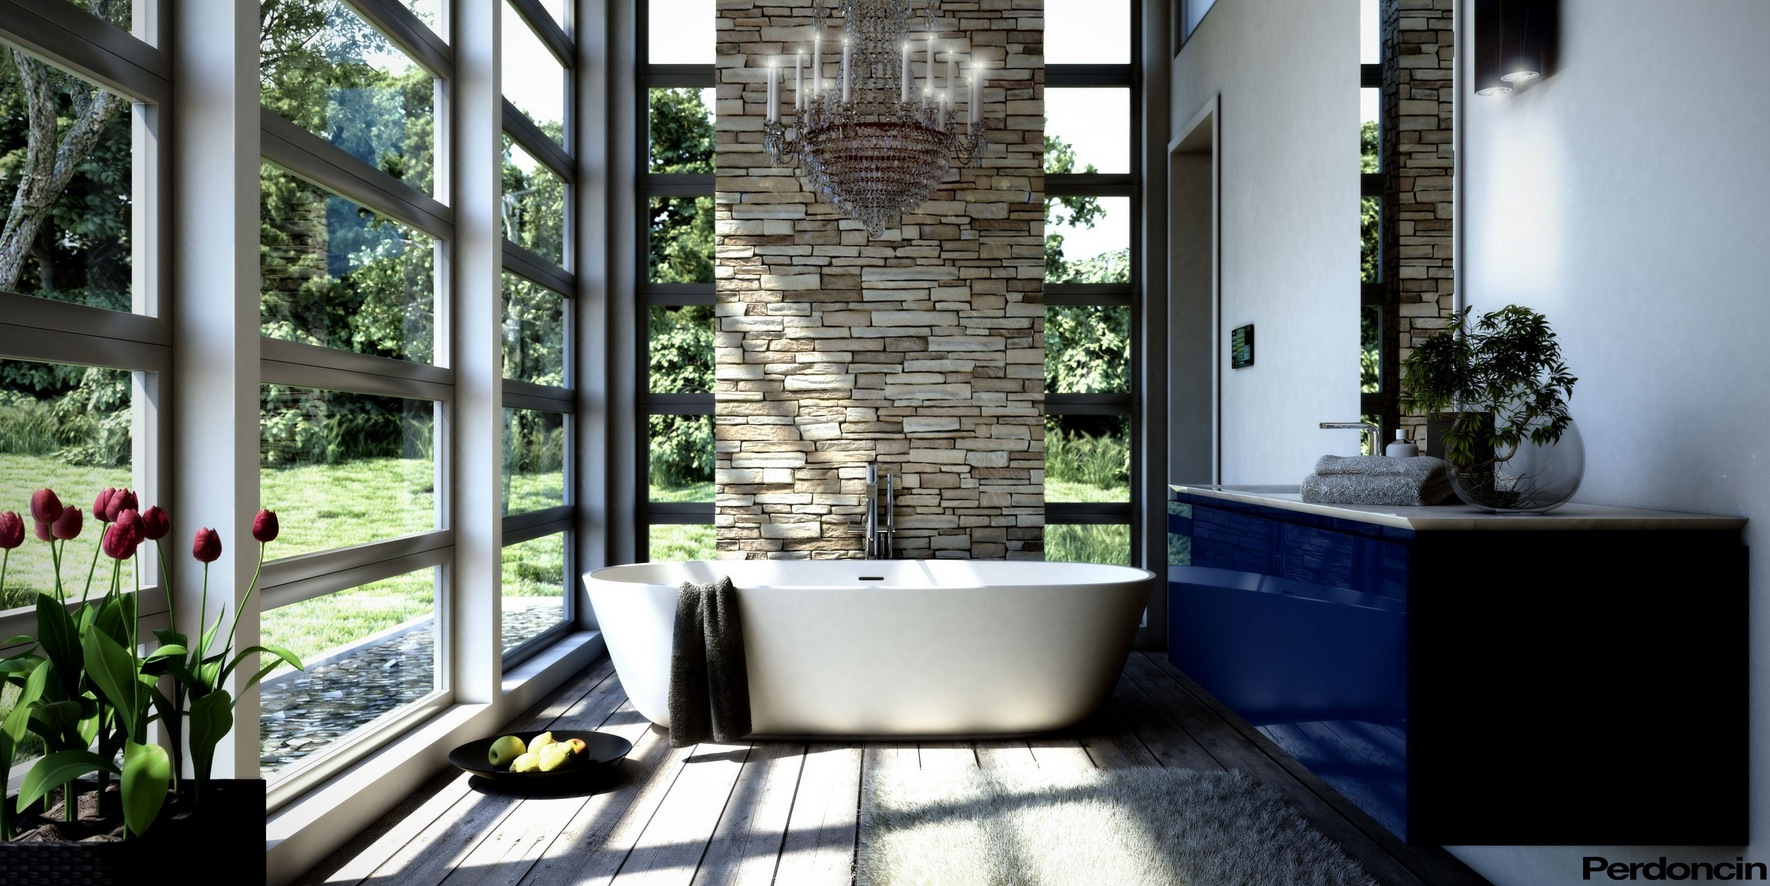 Bathtubs with a view of nature - Amazing contemporary bathroom design ideas at lovely home ...